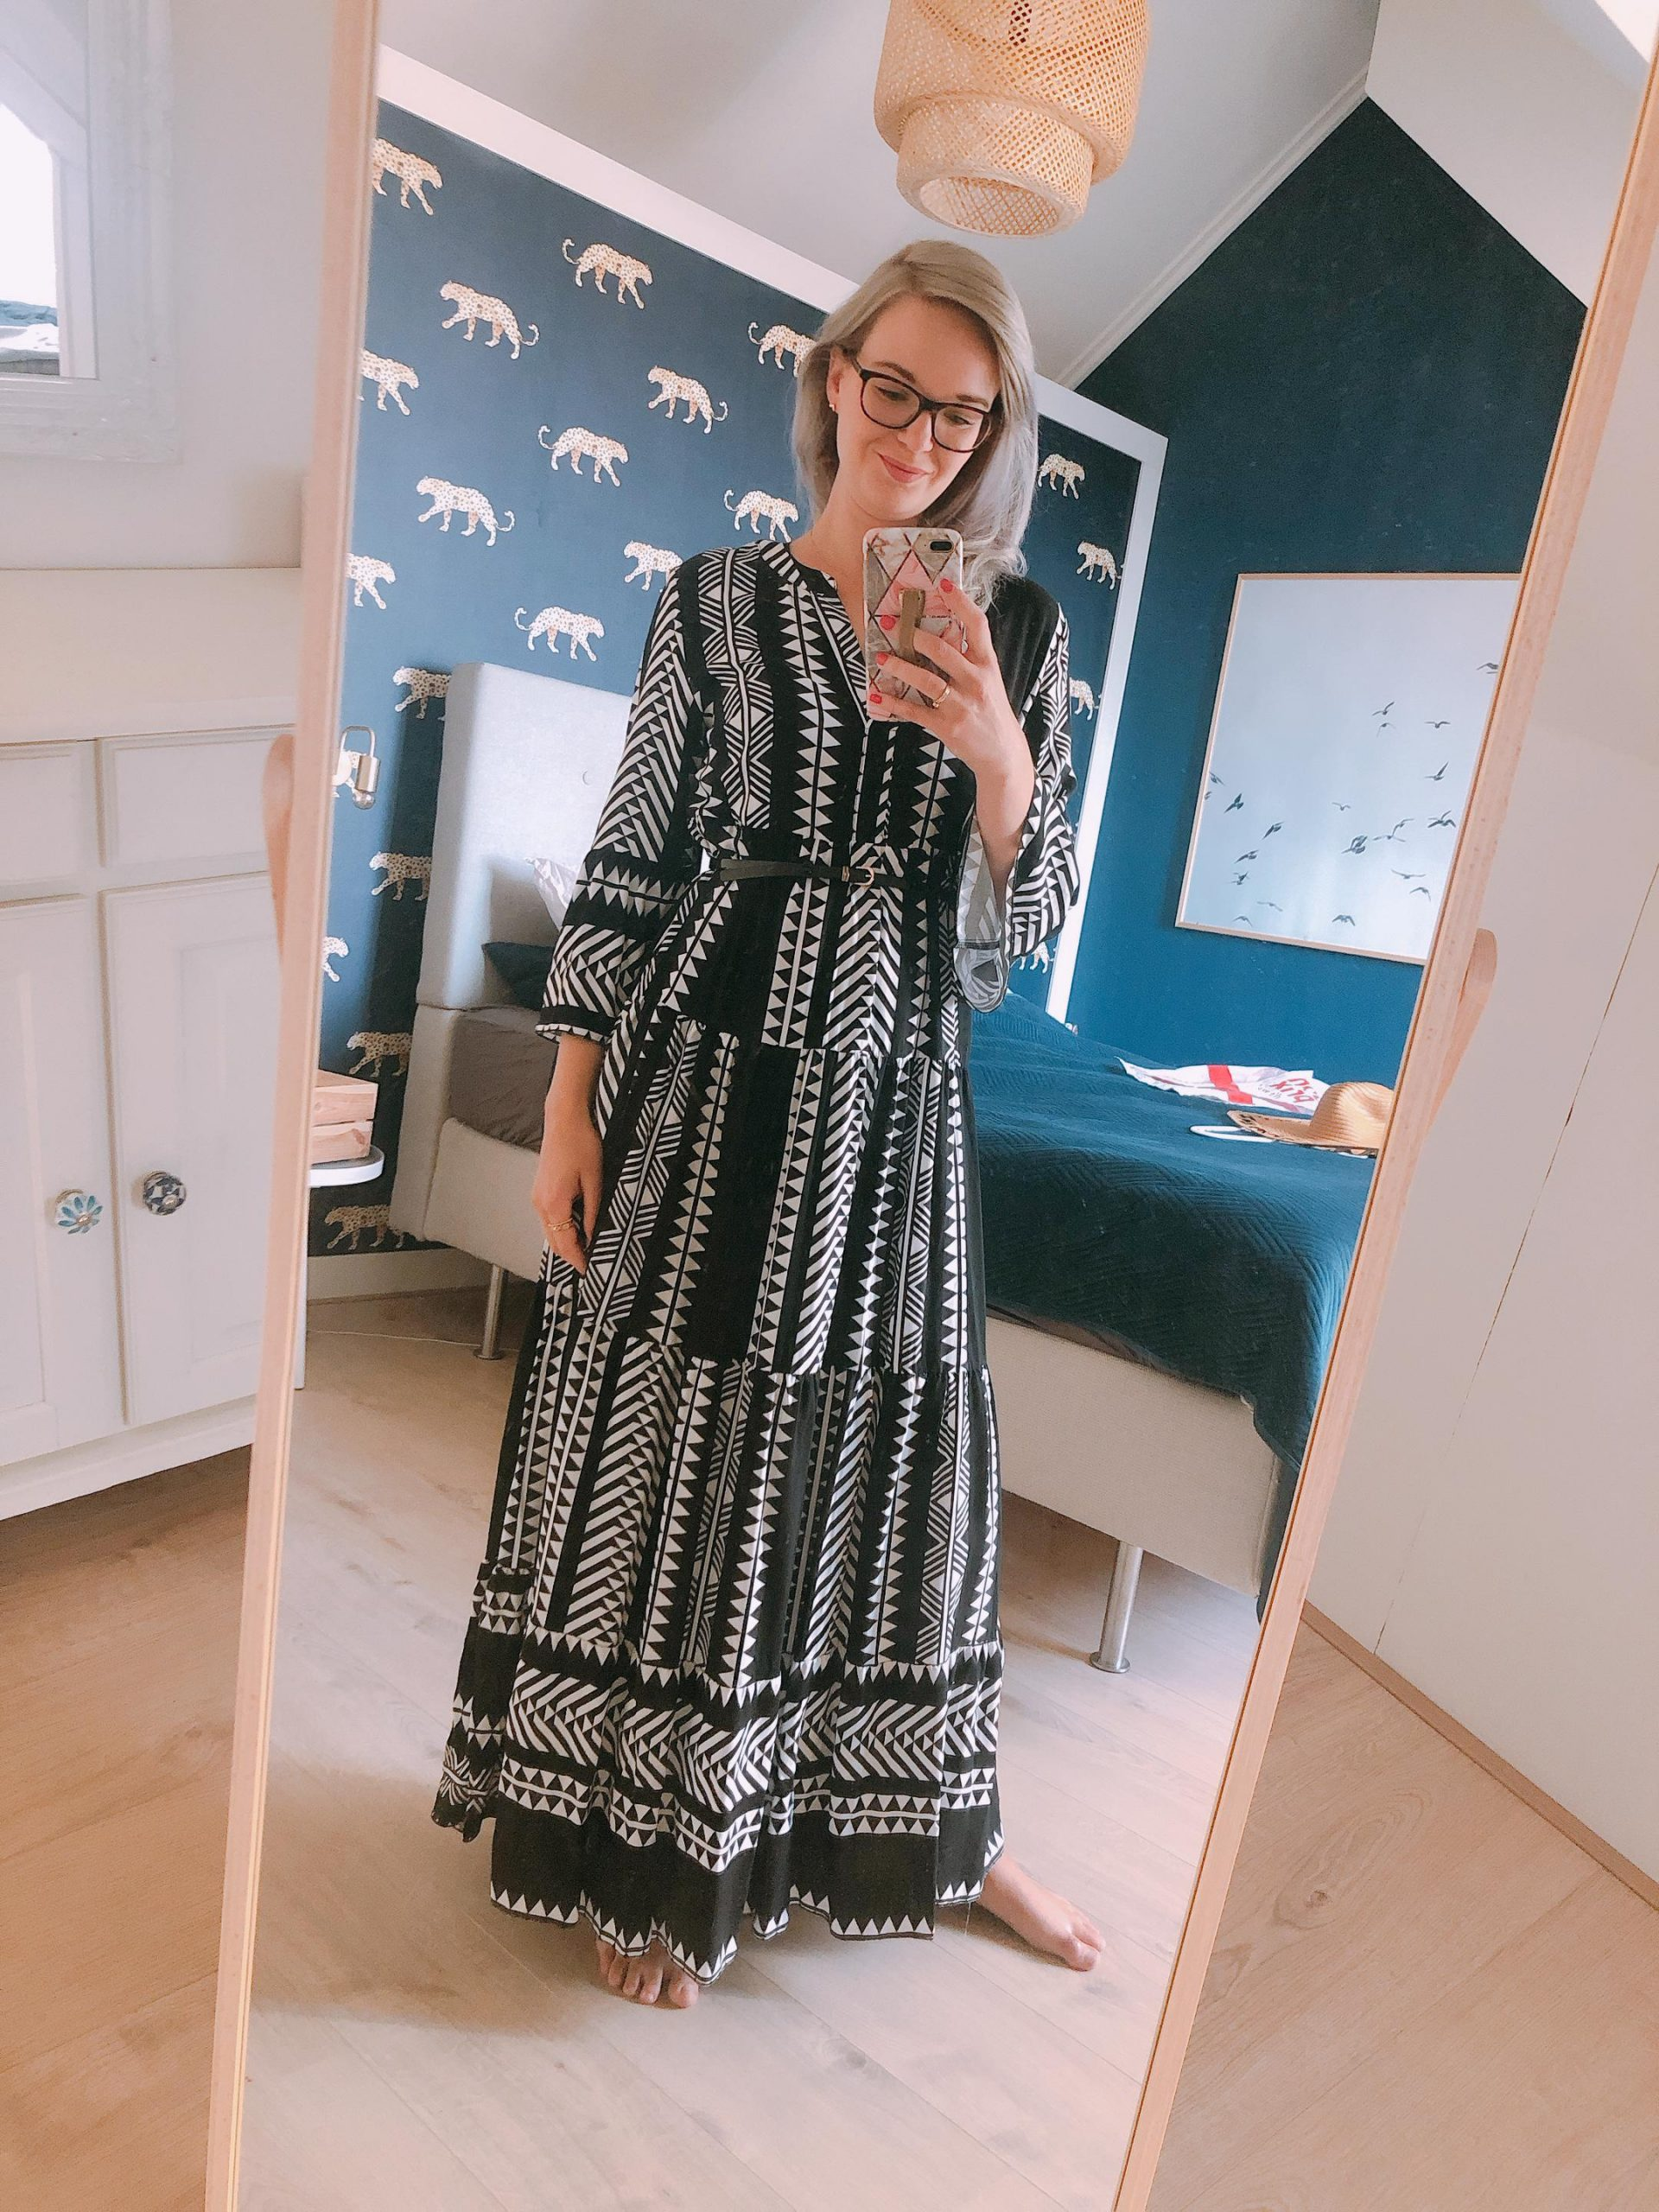 IMG 9621 2160x2880 1 scaled - 3x Zomerse Bohemien Outfits (Shoplog)!